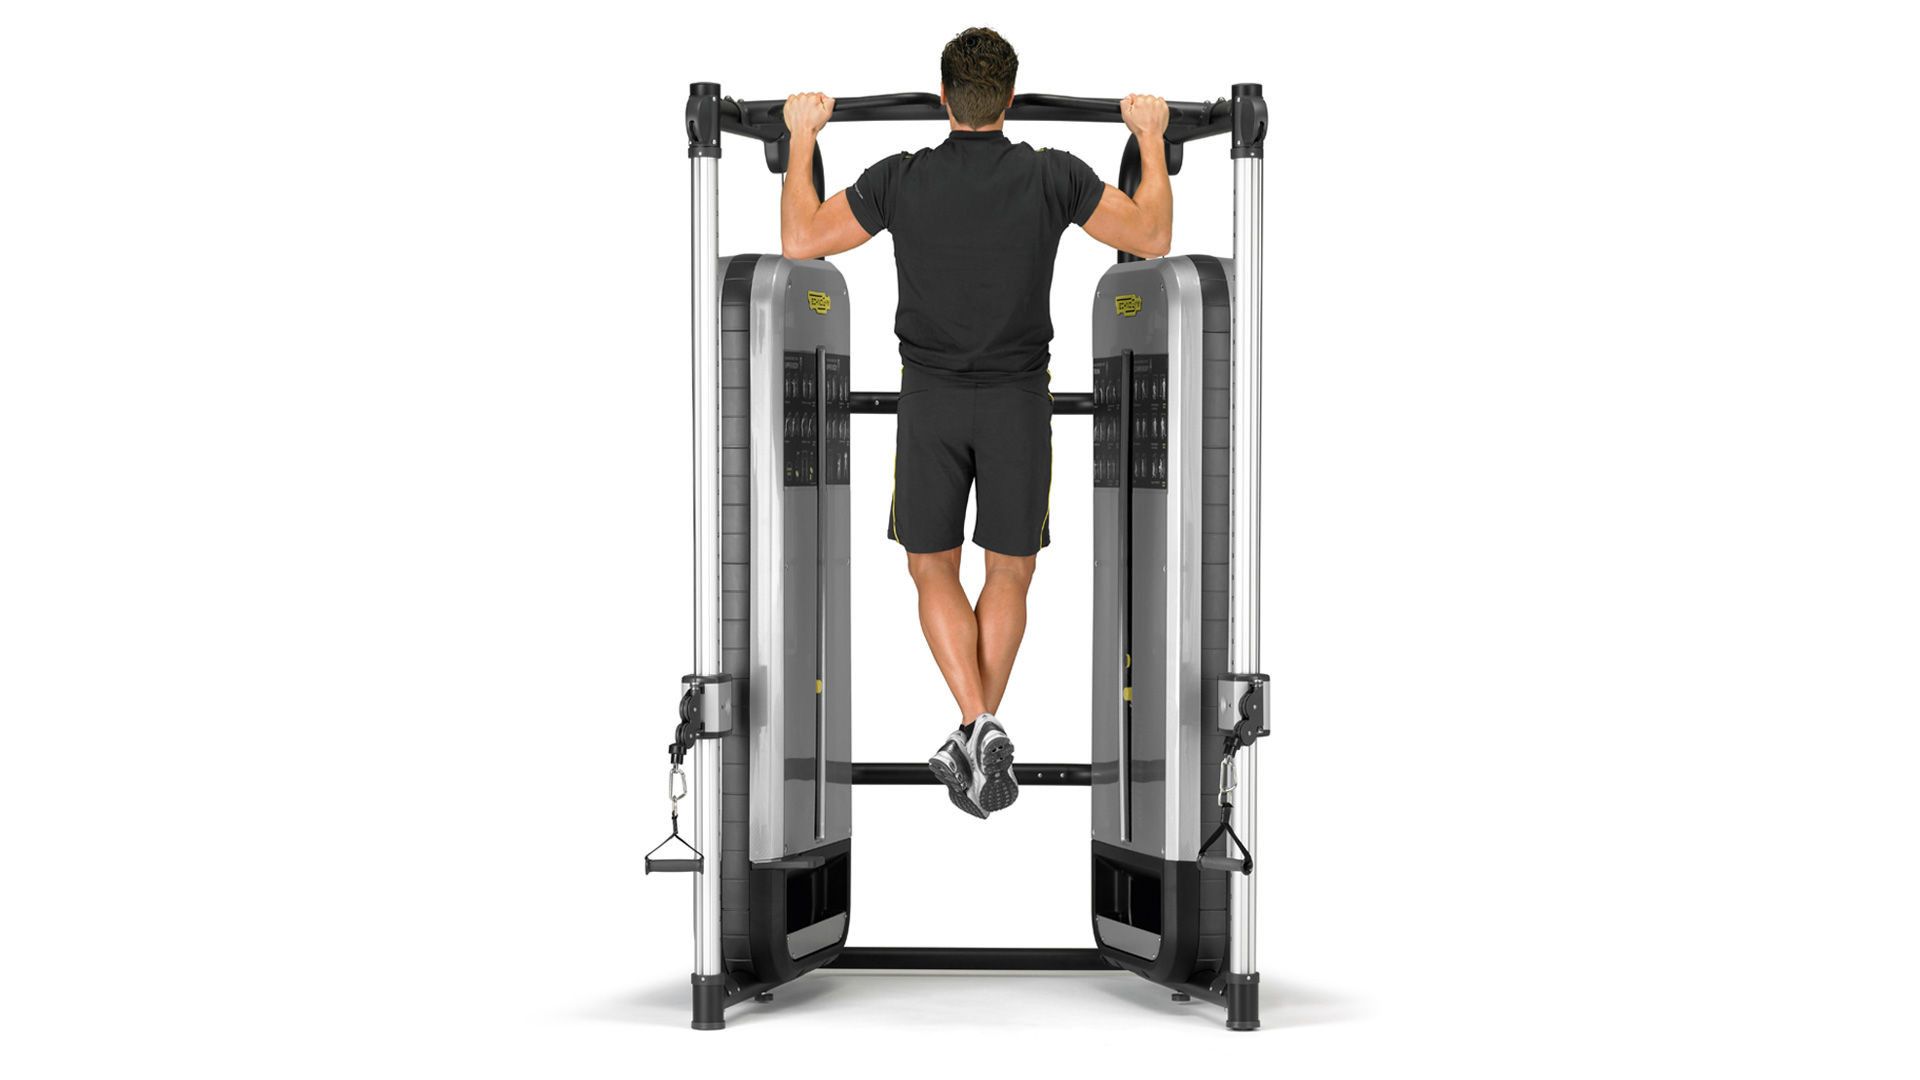 Element Dual Adjustable Cable Pulley Machine Technogym